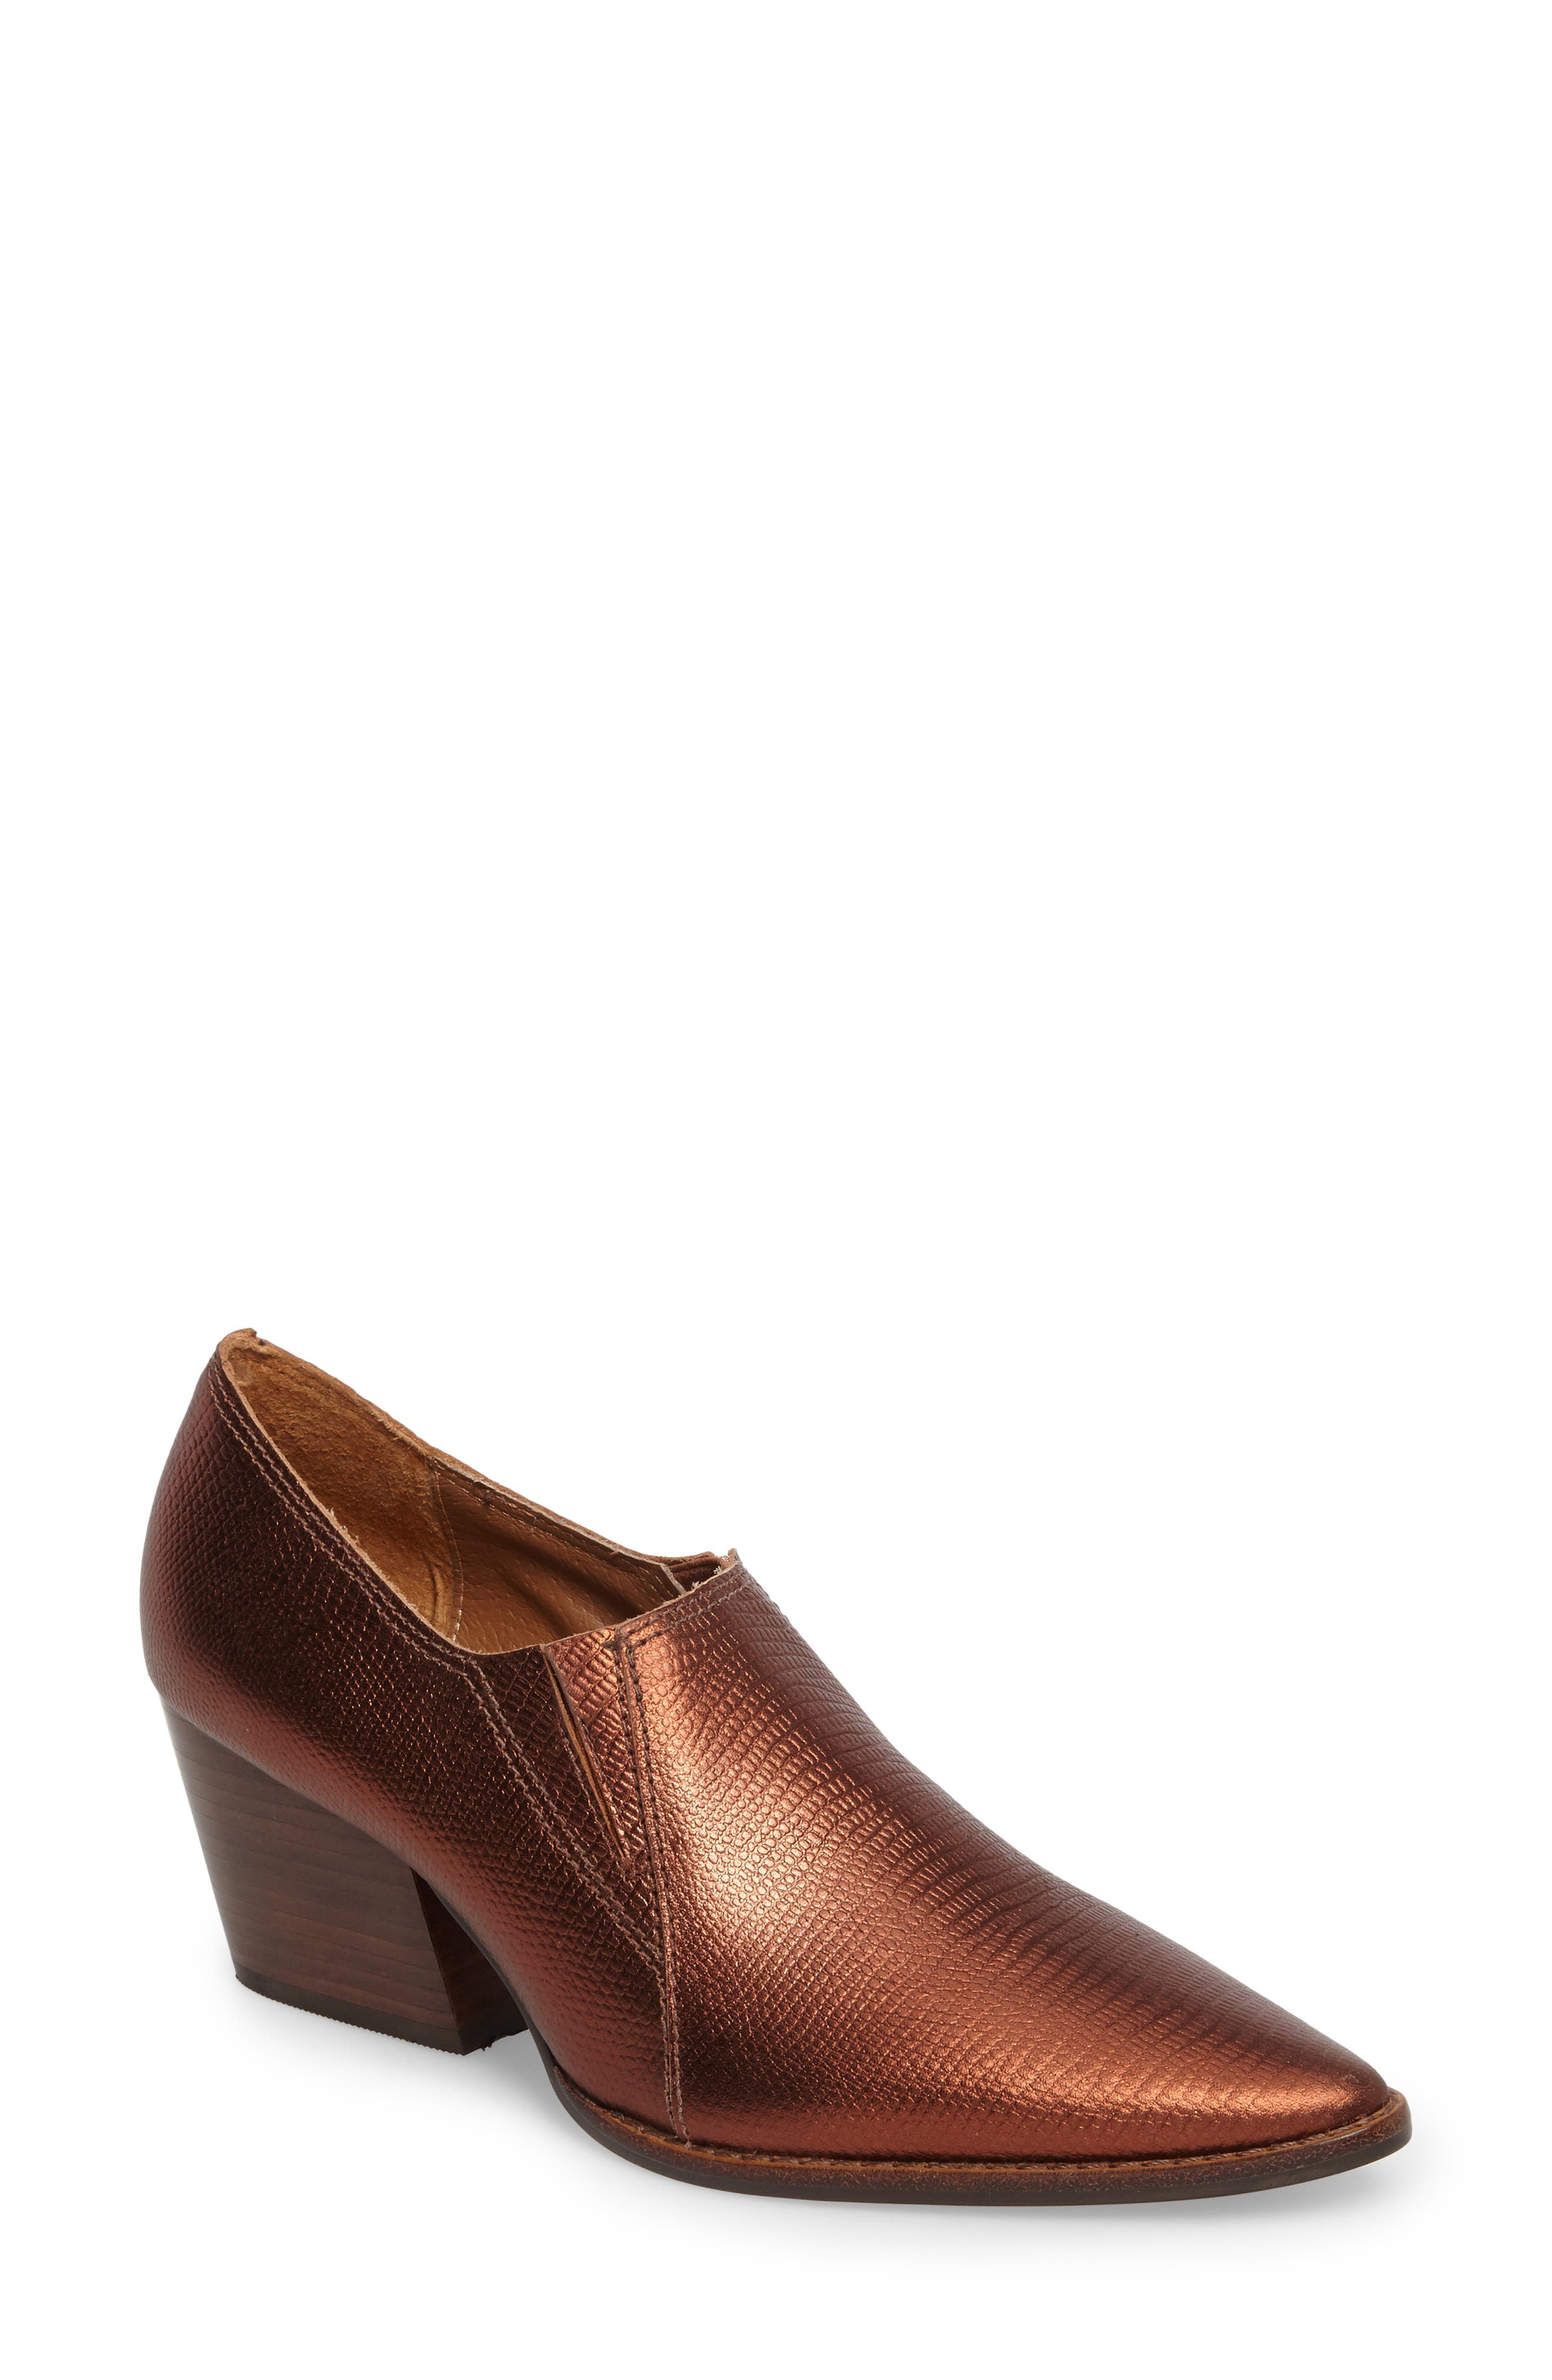 Madeline Block Heel Bootie,                             Main thumbnail 1, color,                             Copper Leather